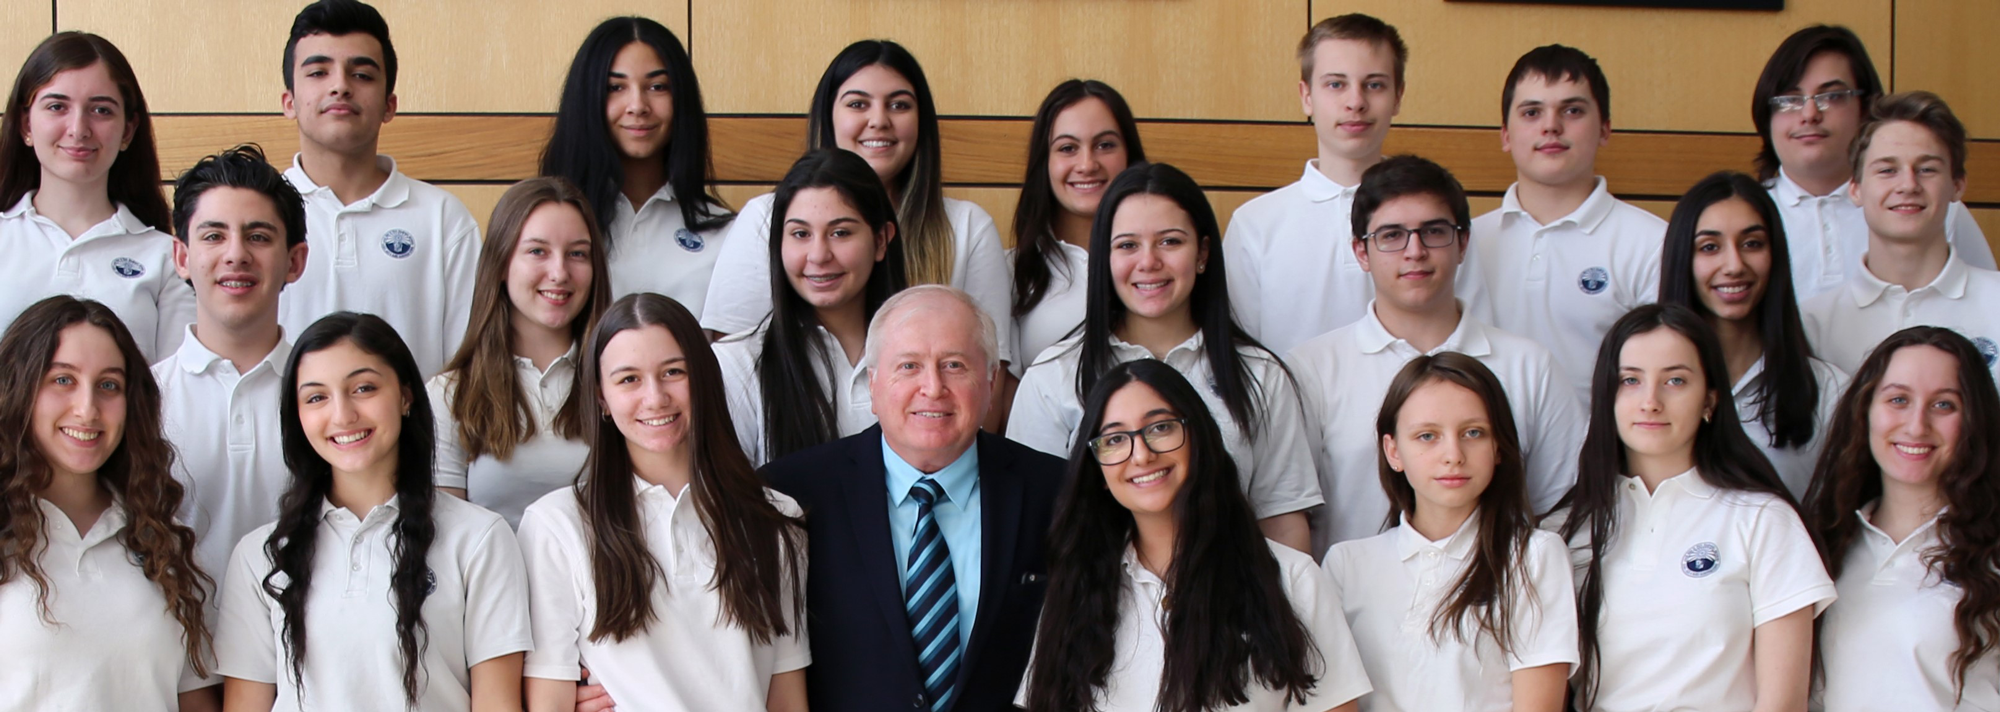 Dr. Hosep Torossian pictured with National Honor Society students